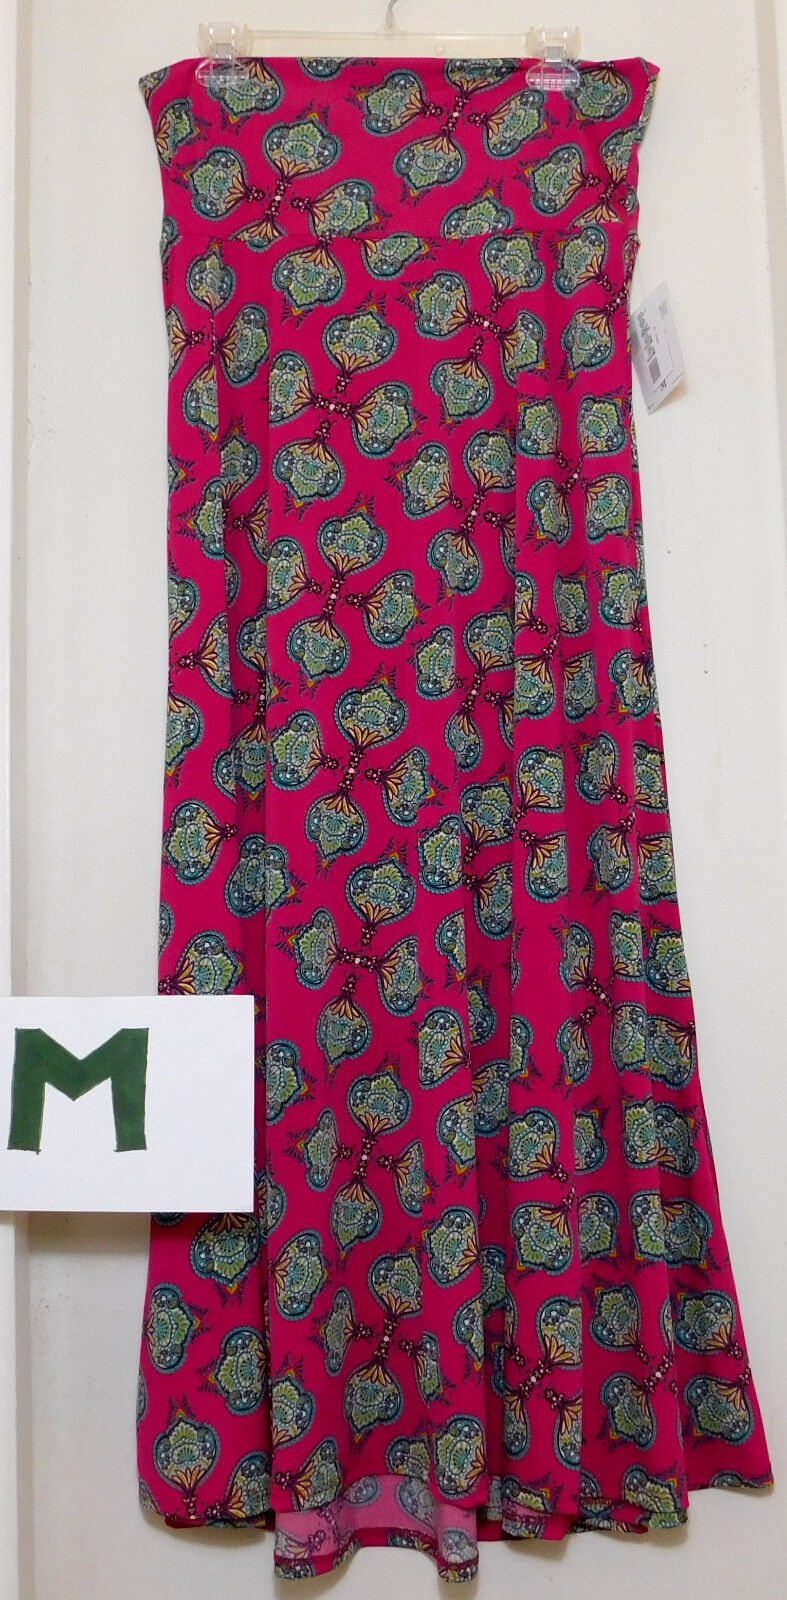 LuLaRoe Maxi M Pink with Green, Teal